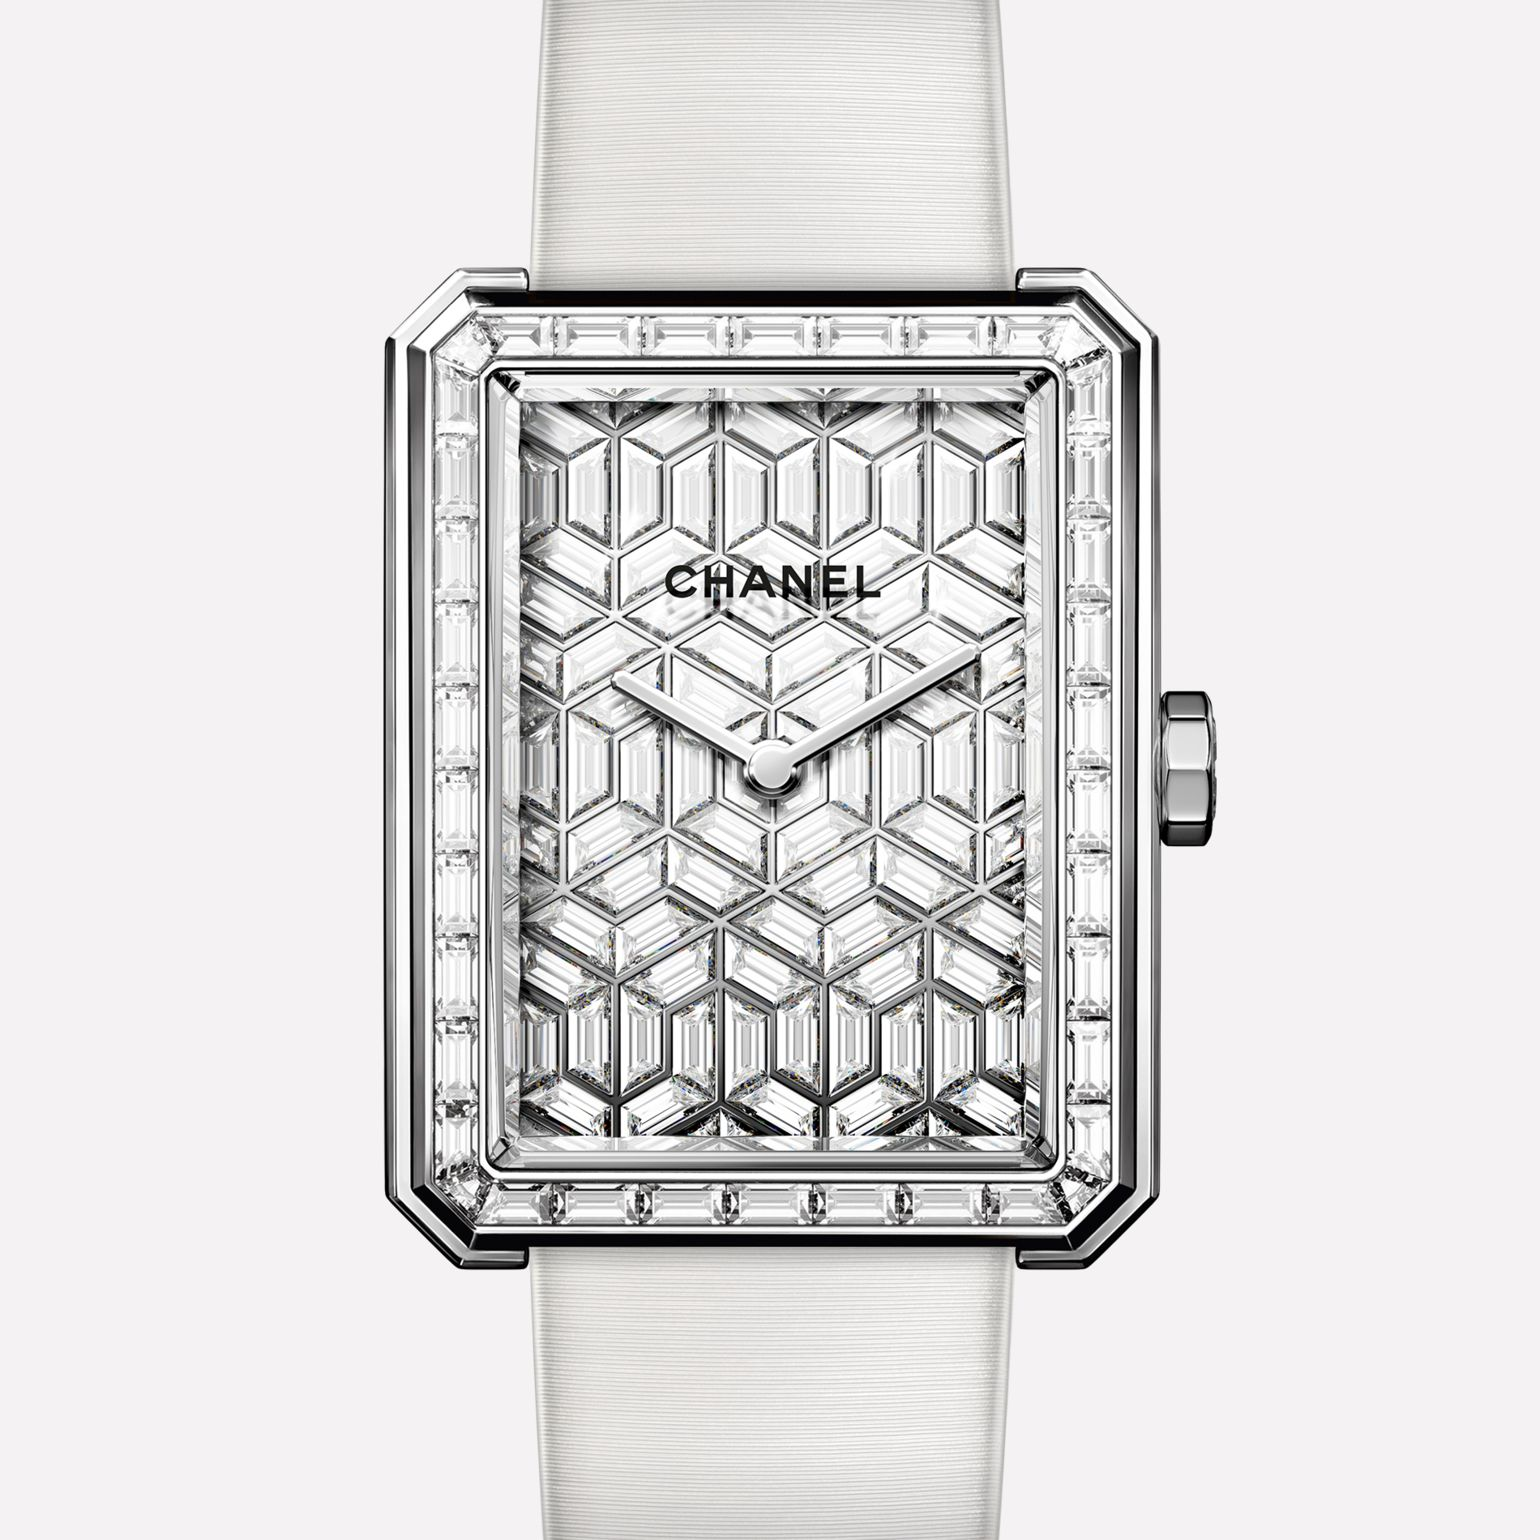 PREMIÈRE∙BOY DE CHANEL ARTY DIAMONDS Large version, white gold and dial set with diamonds, satin strap